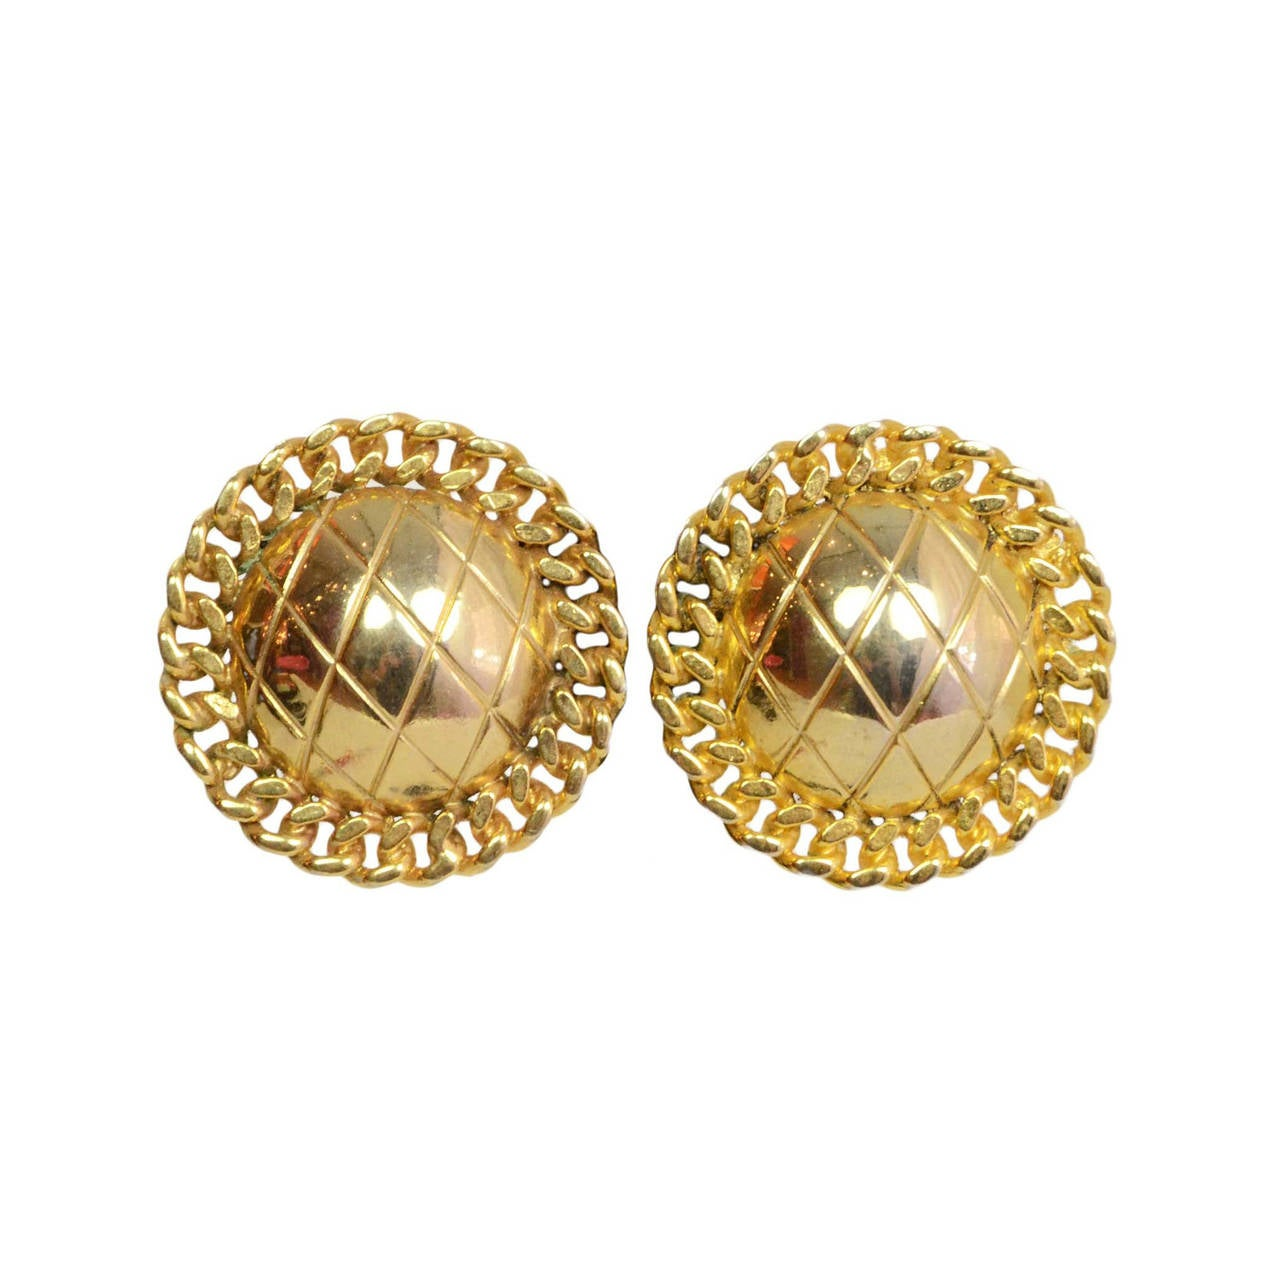 Chanel Vintage '50s'60s Quilted Gold Disc Clip On Earrings 1